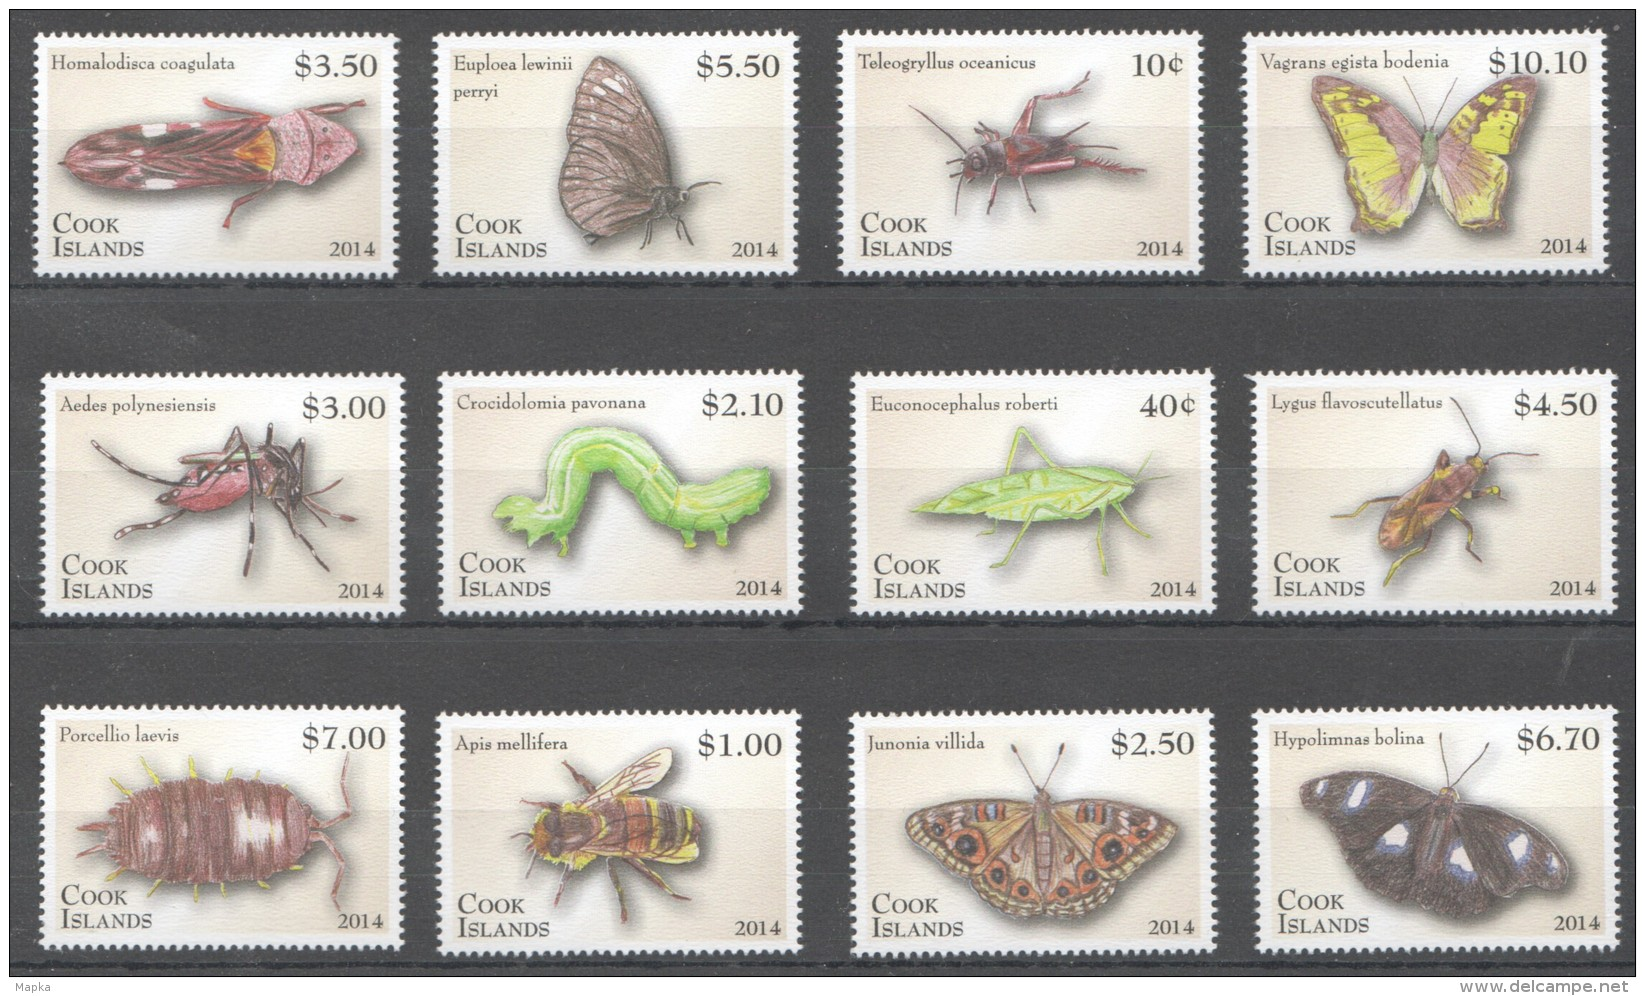 F154 2014 COOK ISLANDS INSECTS ENTOMOLOGY !!!MICHEL 60 EURO 1SET MNH - Insects